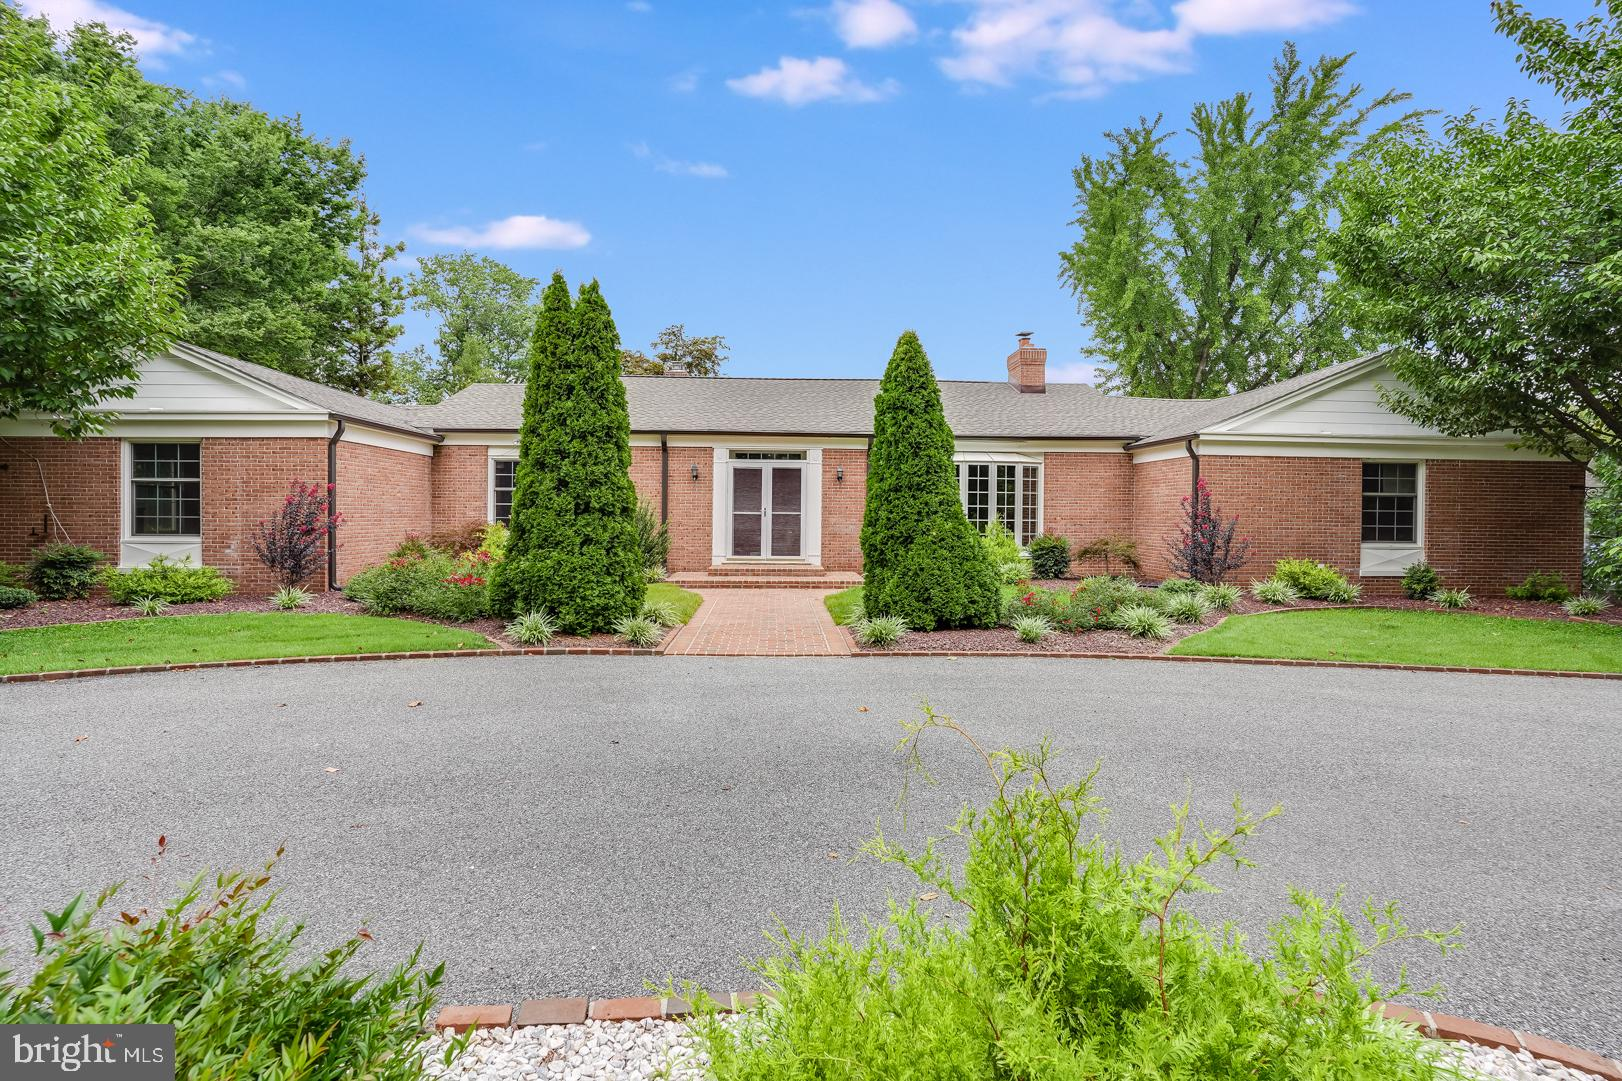 """THIS IS NO ORDINARY HOME!  One of a kind brick ranch in OLDE Dover with 1.15-acre lot w/approximately 3108 sq. ft. with views of Silver Lake and has brick walkways and patio, circular brick lined driveway and quality built unlike newer homes.  The sellers have done some recent updates like new roof, gutters, air ducts were  Aerosealed for efficiency and to eliminate  leaks and reducing heating costs, new skylight in kitchen and fresh paint.  Previous updates for this home were new kitchen w/granite counter tops w/oversized refrigerator/freezer, tile floor and lots of cabinet and counter space and most windows have been replaced in the home. Lovely hardwood floors are in all rooms except baths and kitchen and this home is a residence with a gracious setting and elegant approach to traditional style.  As you enter through the double entry doors to the wide entry hall, immediately to your right is the family room with brick fireplace and hearth, ahead from entry hall is the formal living room with marble surround fireplace and built-ins and carved wooden doors closing off the large dining room to the right w/built ins.  From there is a view of the large sunroom w/tiled flooring and built-in cabinets and space for a refrigerator or wine cooler and access to brick patio. The dining room is easy access to the modern gourmet kitchen and from there easy access to laundry and powder room area and to the attached 2-car garage. The bedroom wing has generous sized bedrooms and owners' bath as well as hall bath.  Bathrooms were the next project for the sellers and will need updating. An ample closet space in the home and offering  three linen closets. There is a full basement with lots of space for future finishing a game room and even has """"fallout shelter"""" which would make a great wine cellar. We aren't done yet....there is a detached two car garage as well as a one car garage w/guest house above. This home is in a prime location and your search will be ended as this is a fabul"""